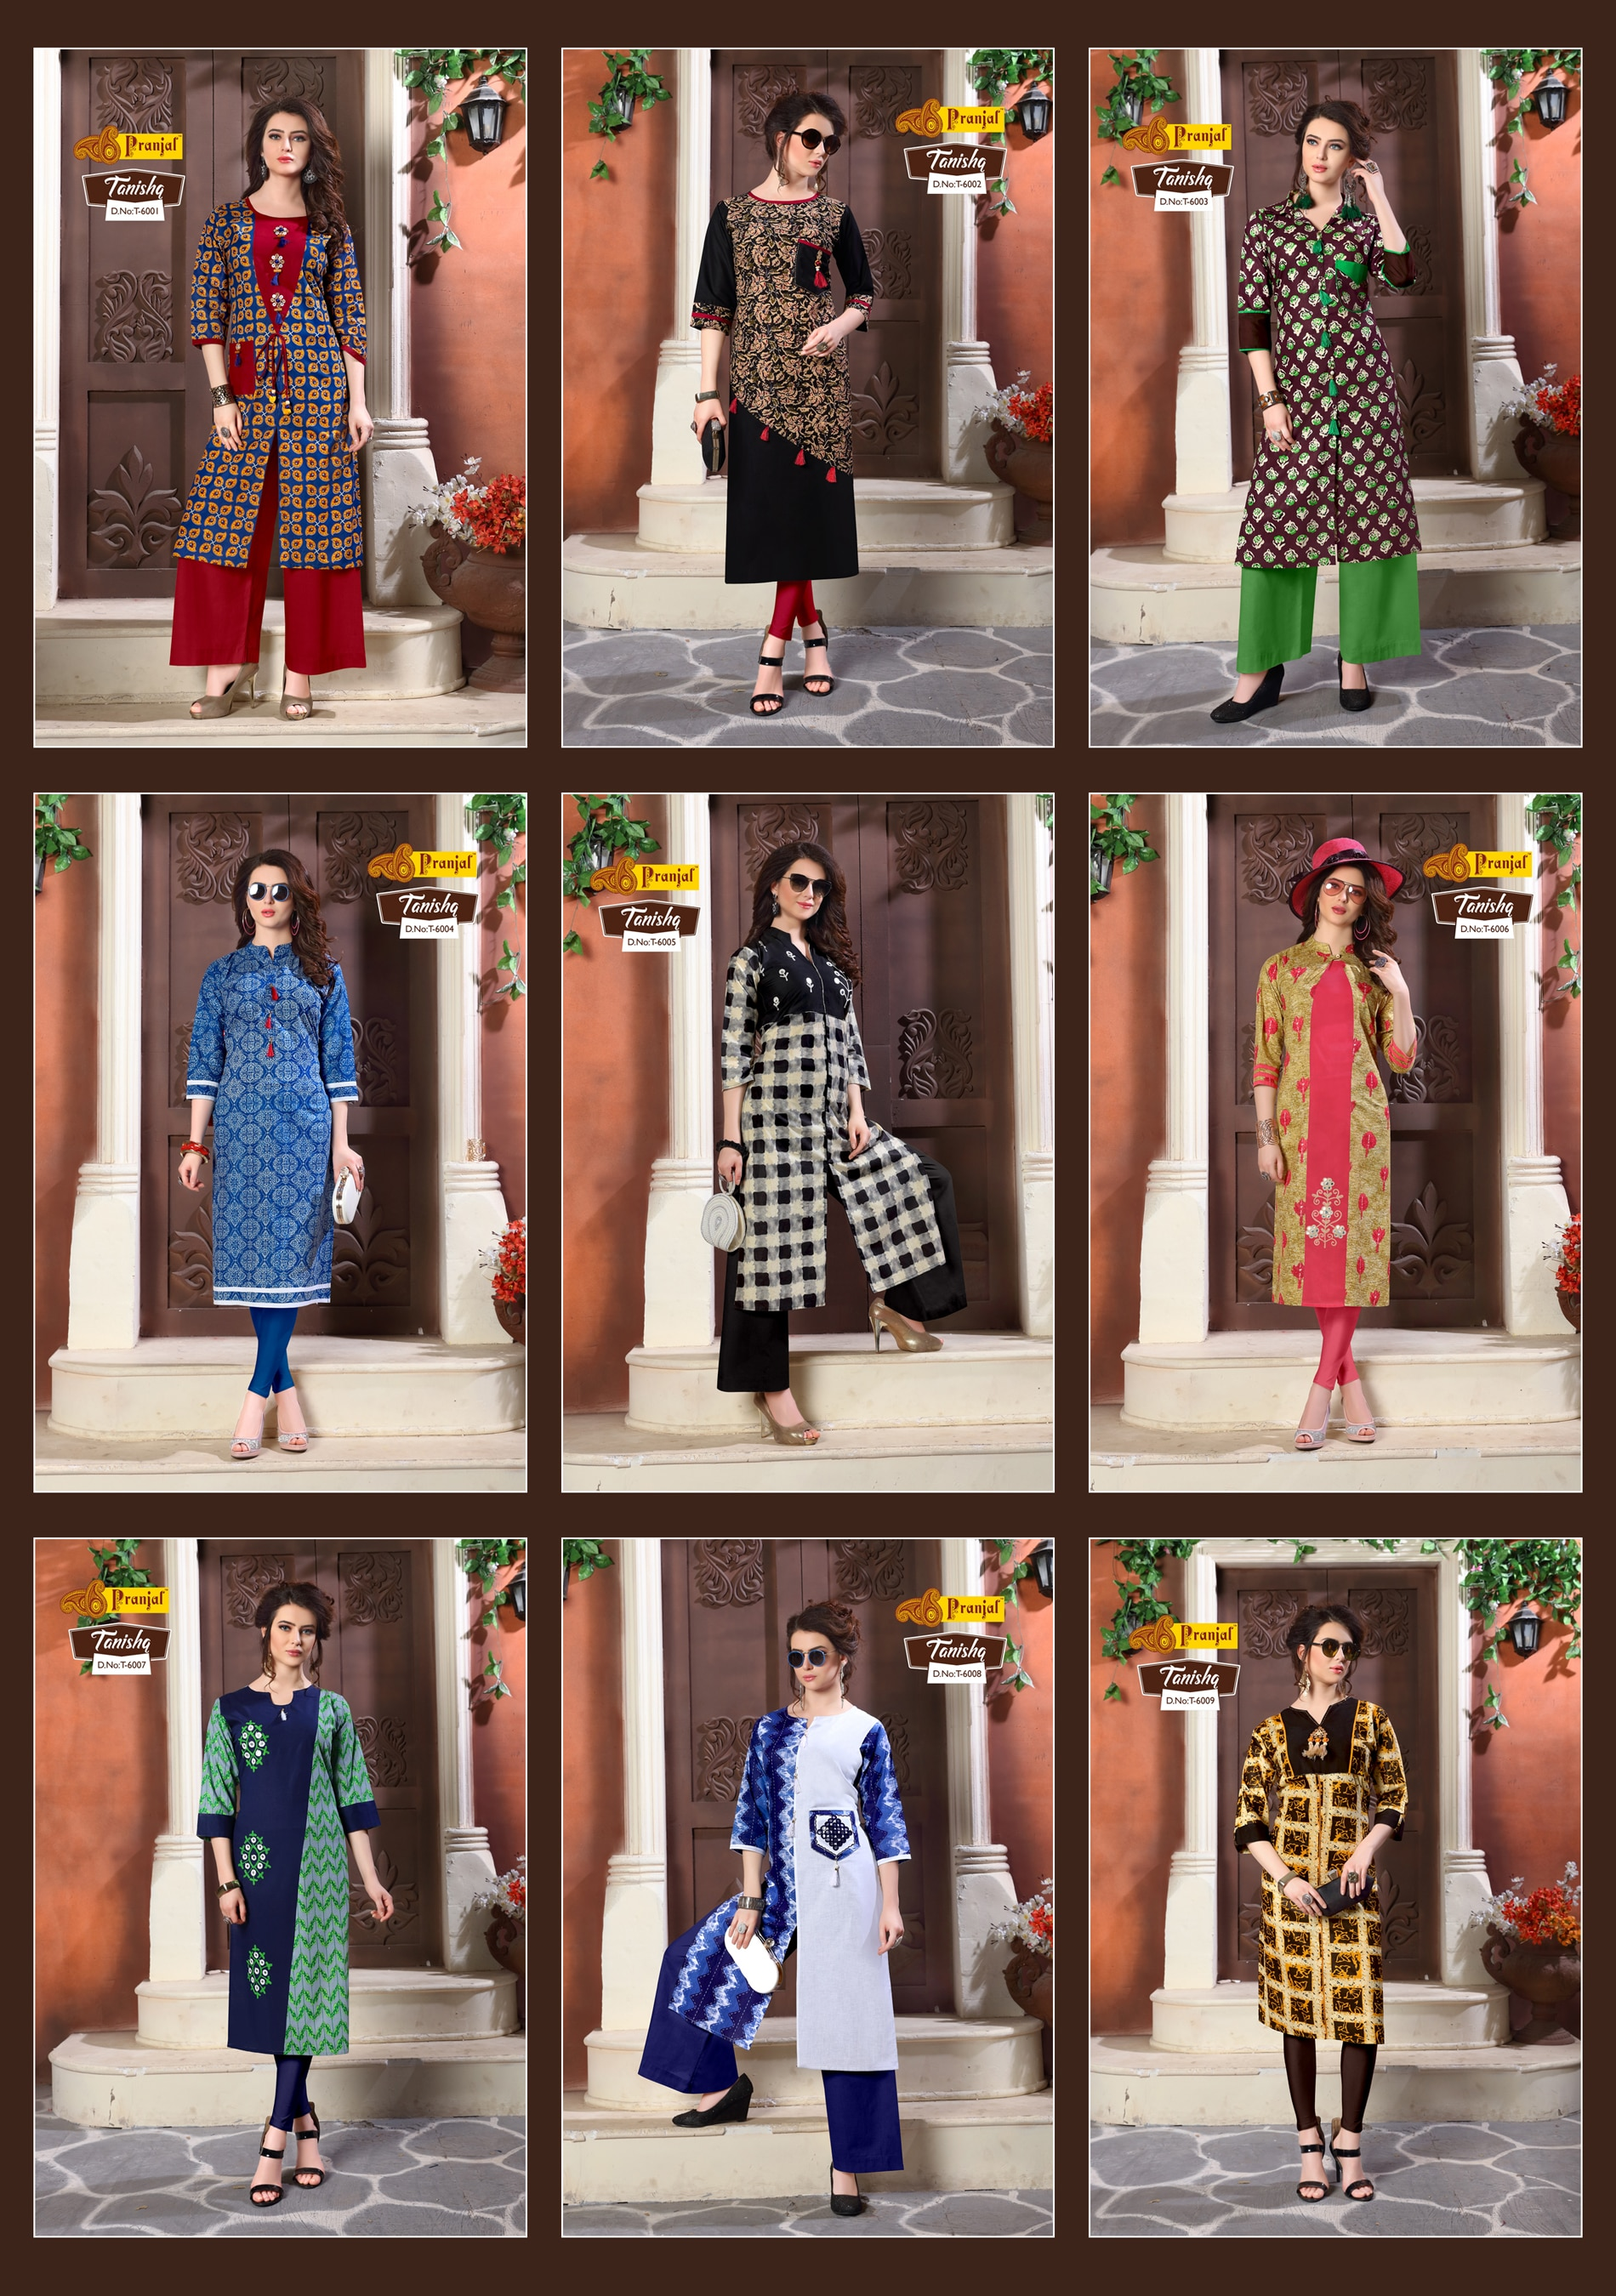 Pranjal Creations achieved one more miles stone in TANISHQ Catalogue sequence. We are happy to announce launching of new catalogue TANISHQ VOL.6. This Kurtis are specially made for all season. The enriched Pure Printed Cotton fabric is very comfortable to the wearer. Mix and Match Prints with embroidery work looks very excellent. The catalogue is available in 9 different colour and designs. The Sizes available is L, XL and XXL